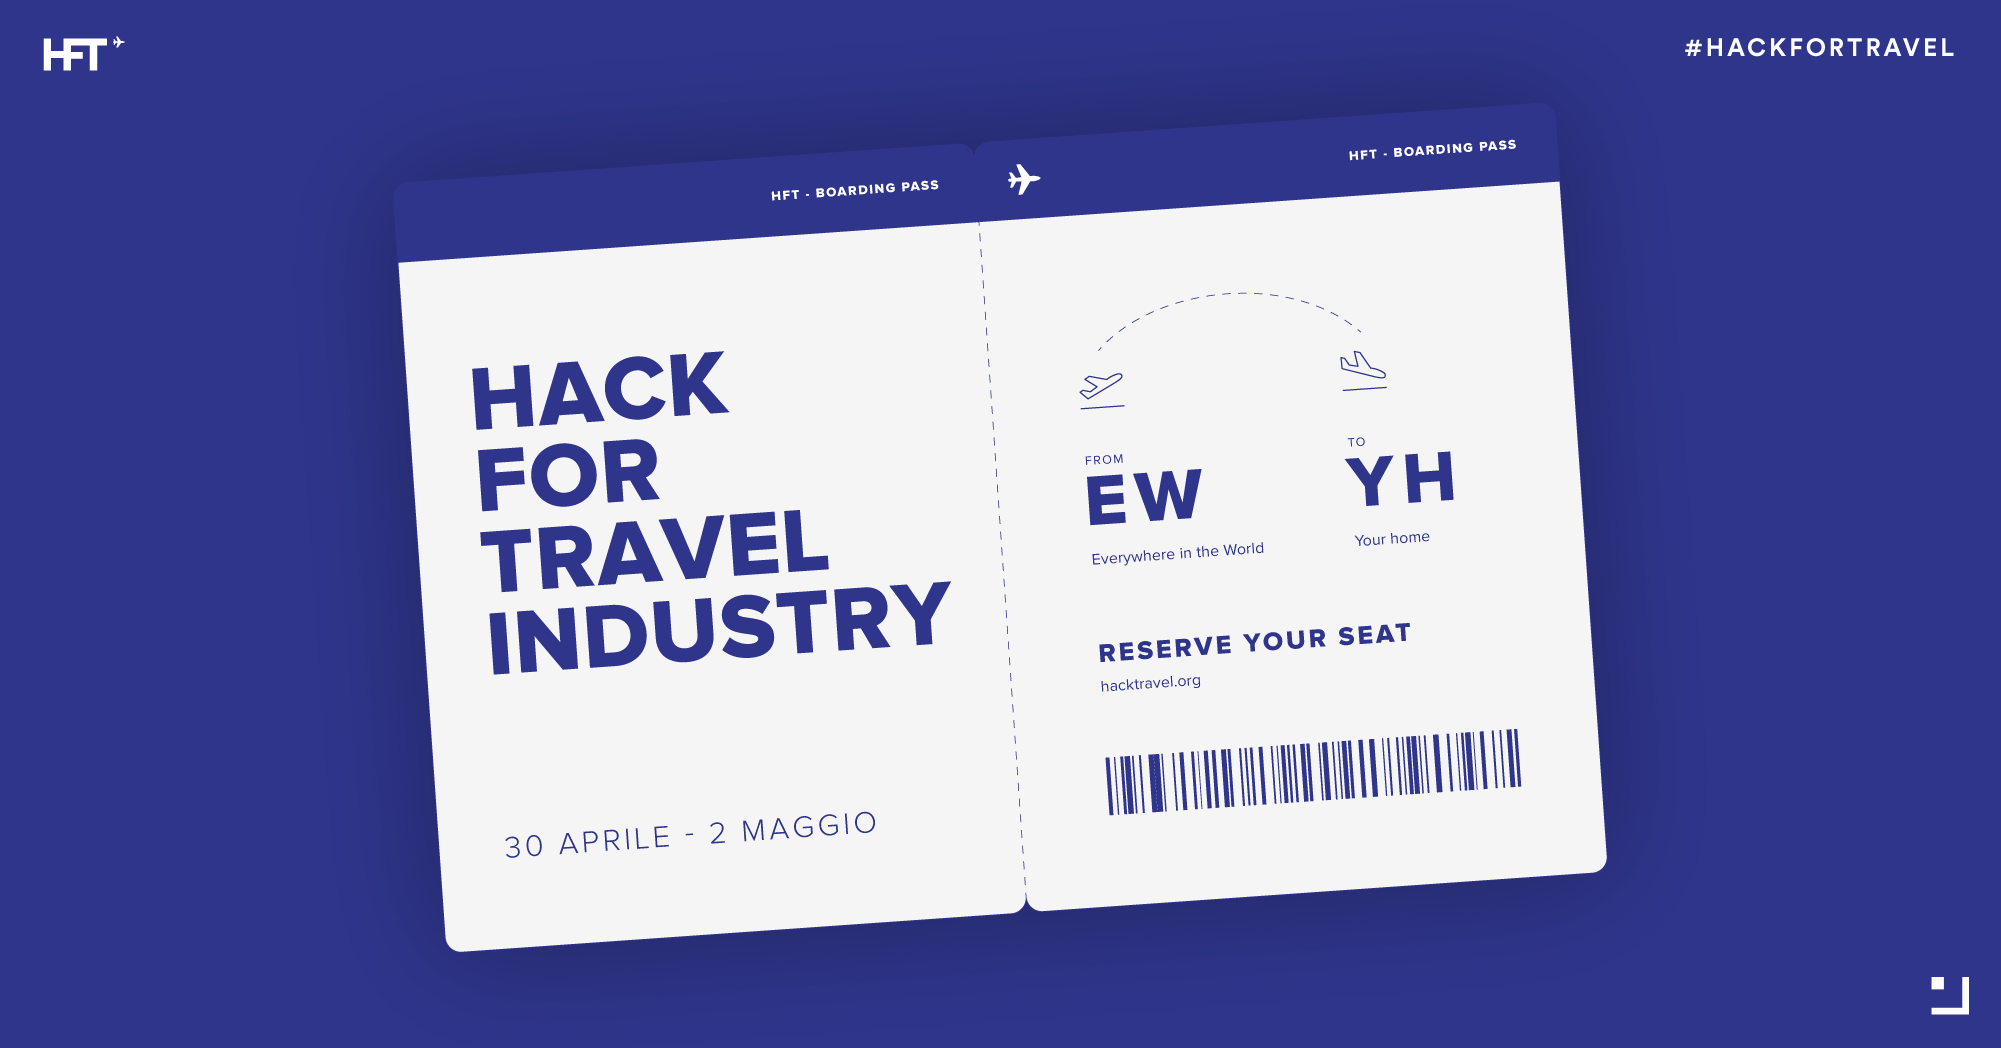 Arriva Hack for the Travel Industry